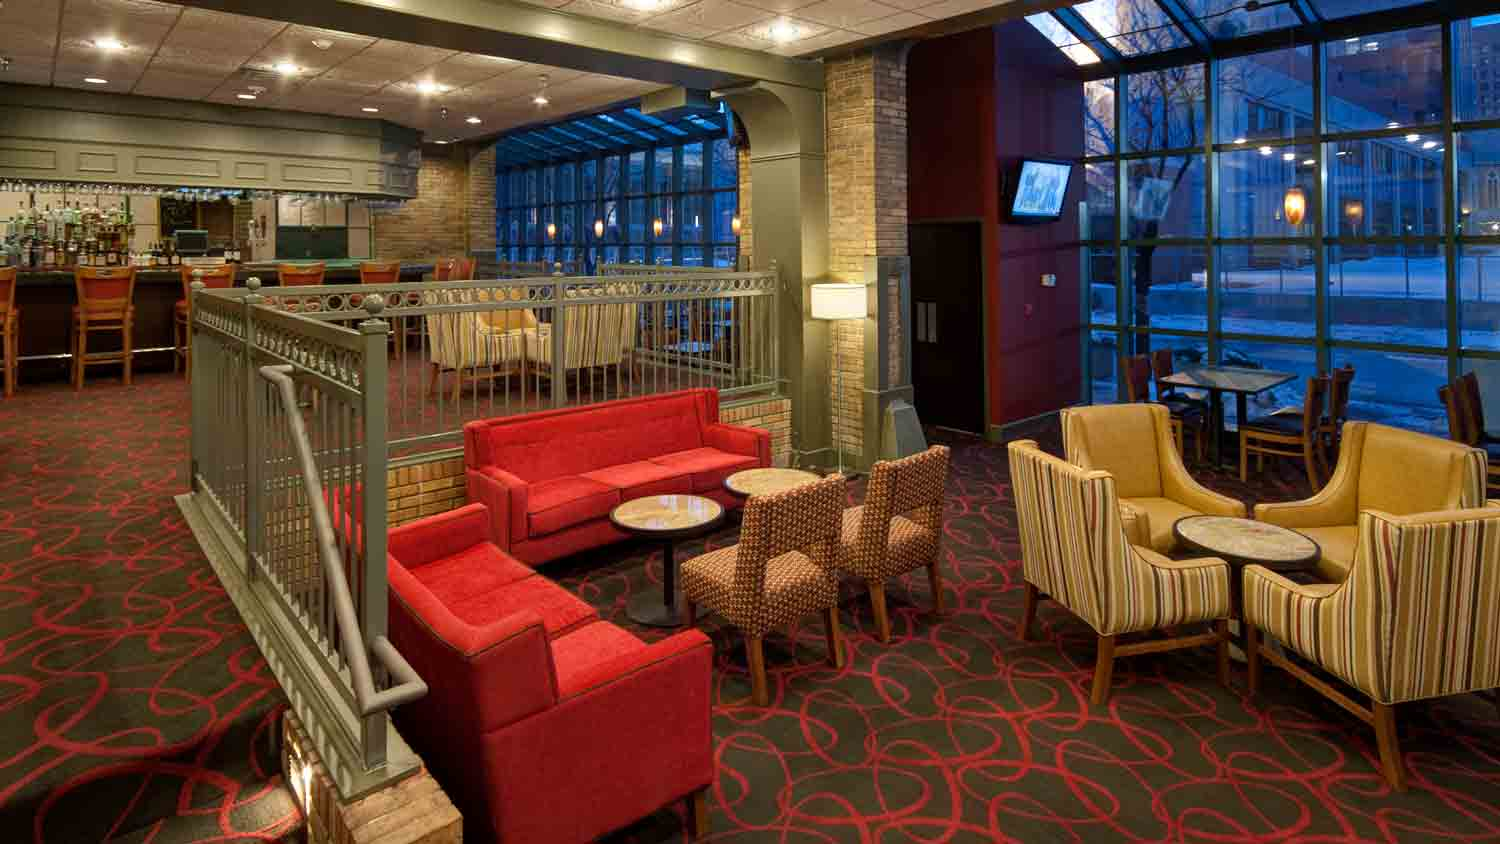 Pullman's Restaurant and Sports Bar at Crowne Plaza Indianapolis Downtown Union Station